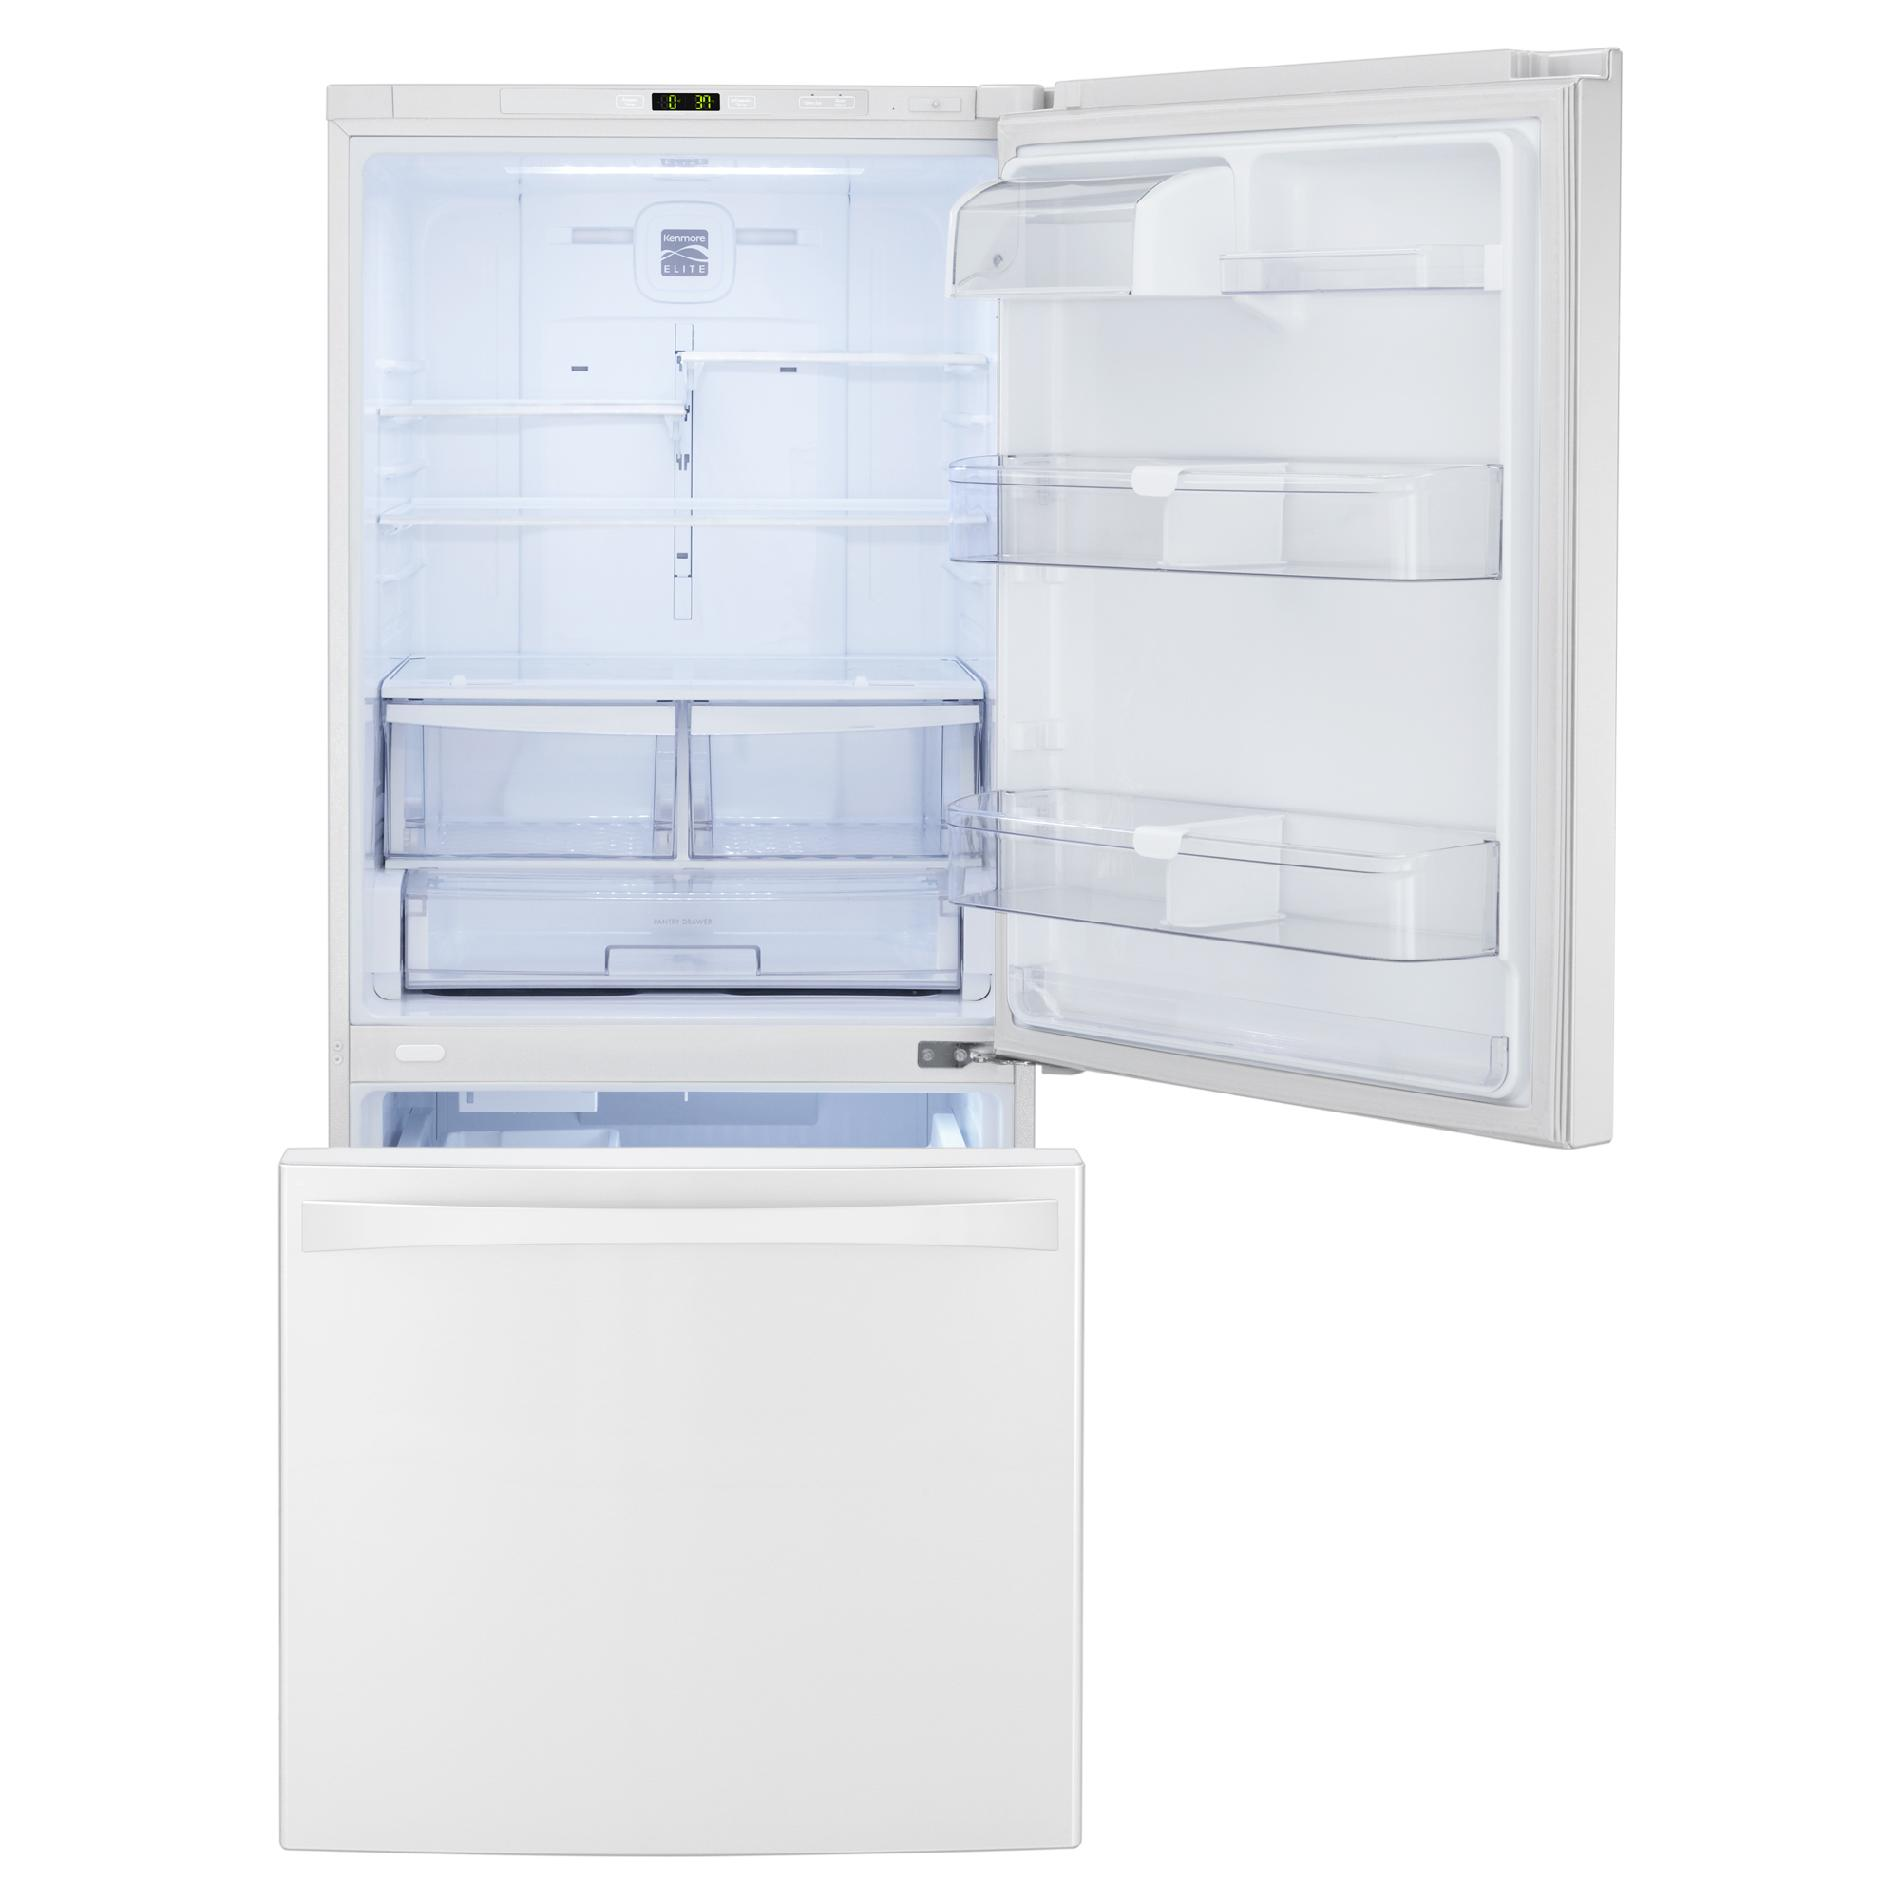 Kenmore Elite 79022 22.1 cu. ft. Bottom-Freezer Refrigerator – White